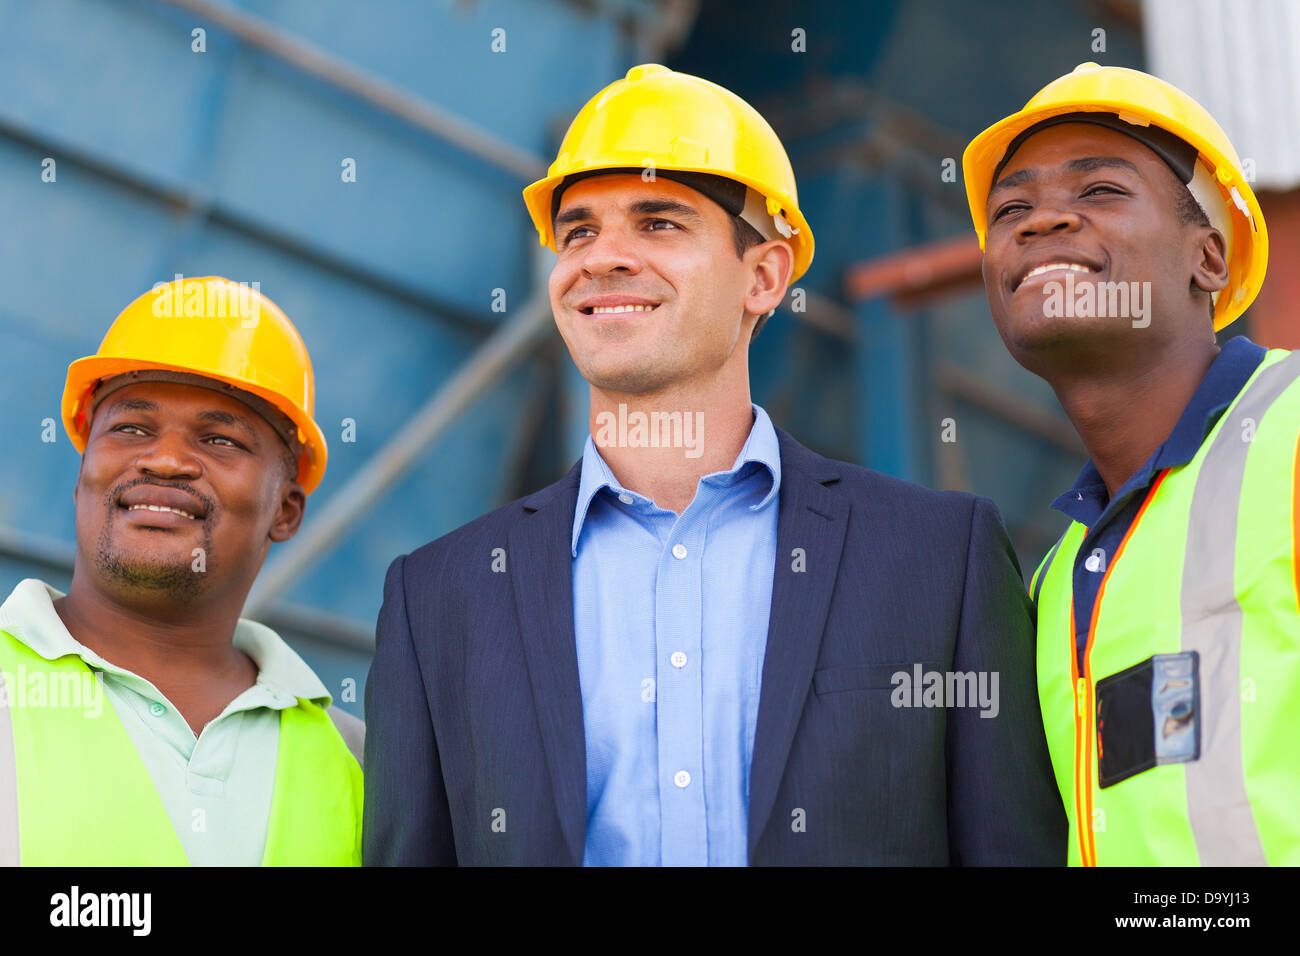 optimistic heavy industry manager and workers portrait - Stock Image